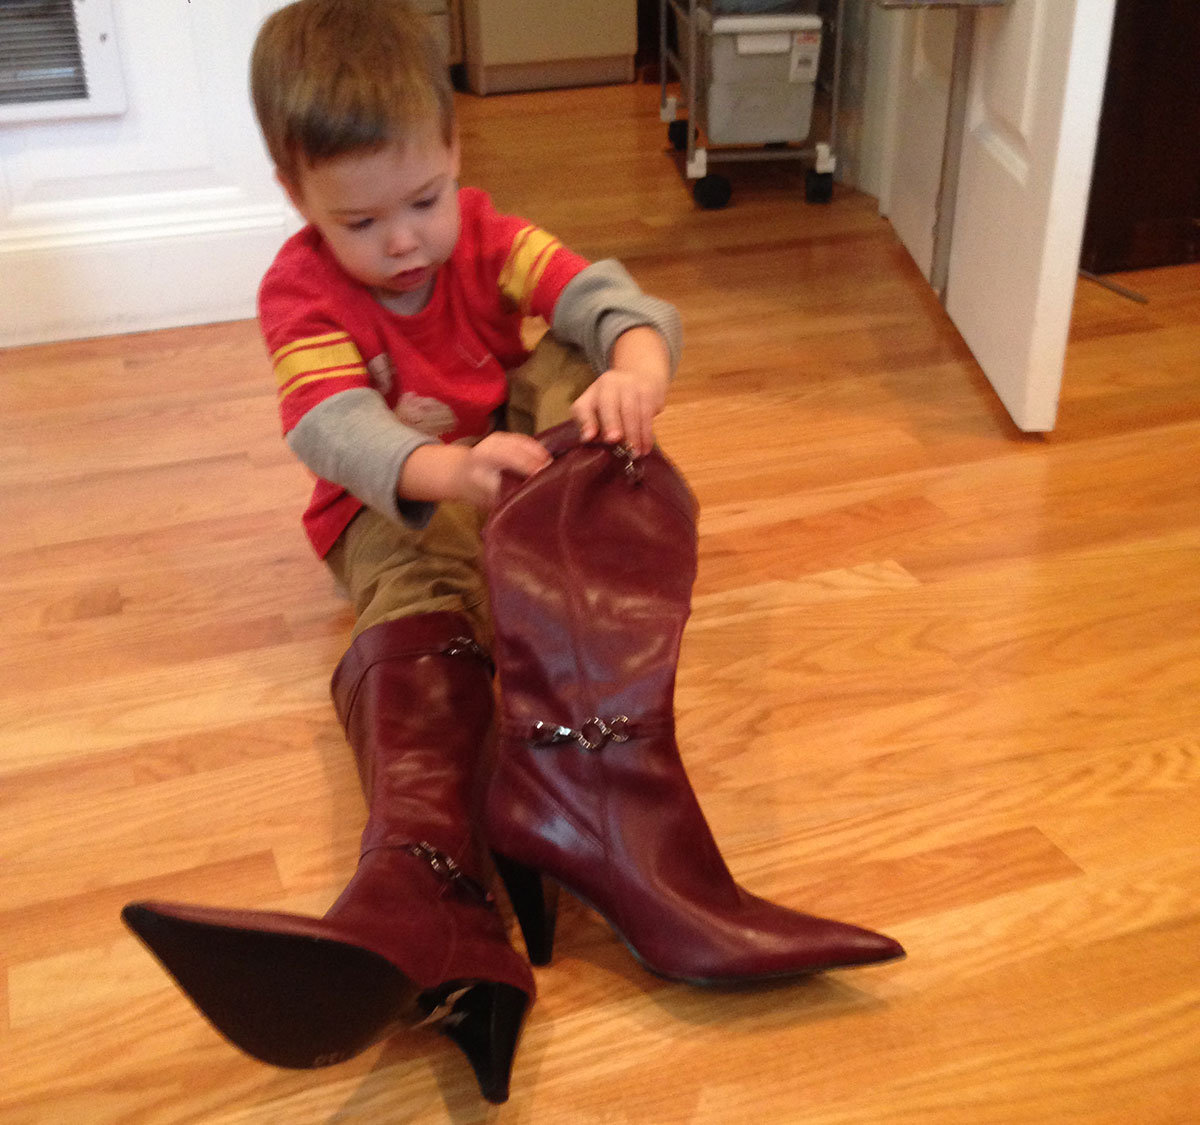 Loa's nephew tries on her boots